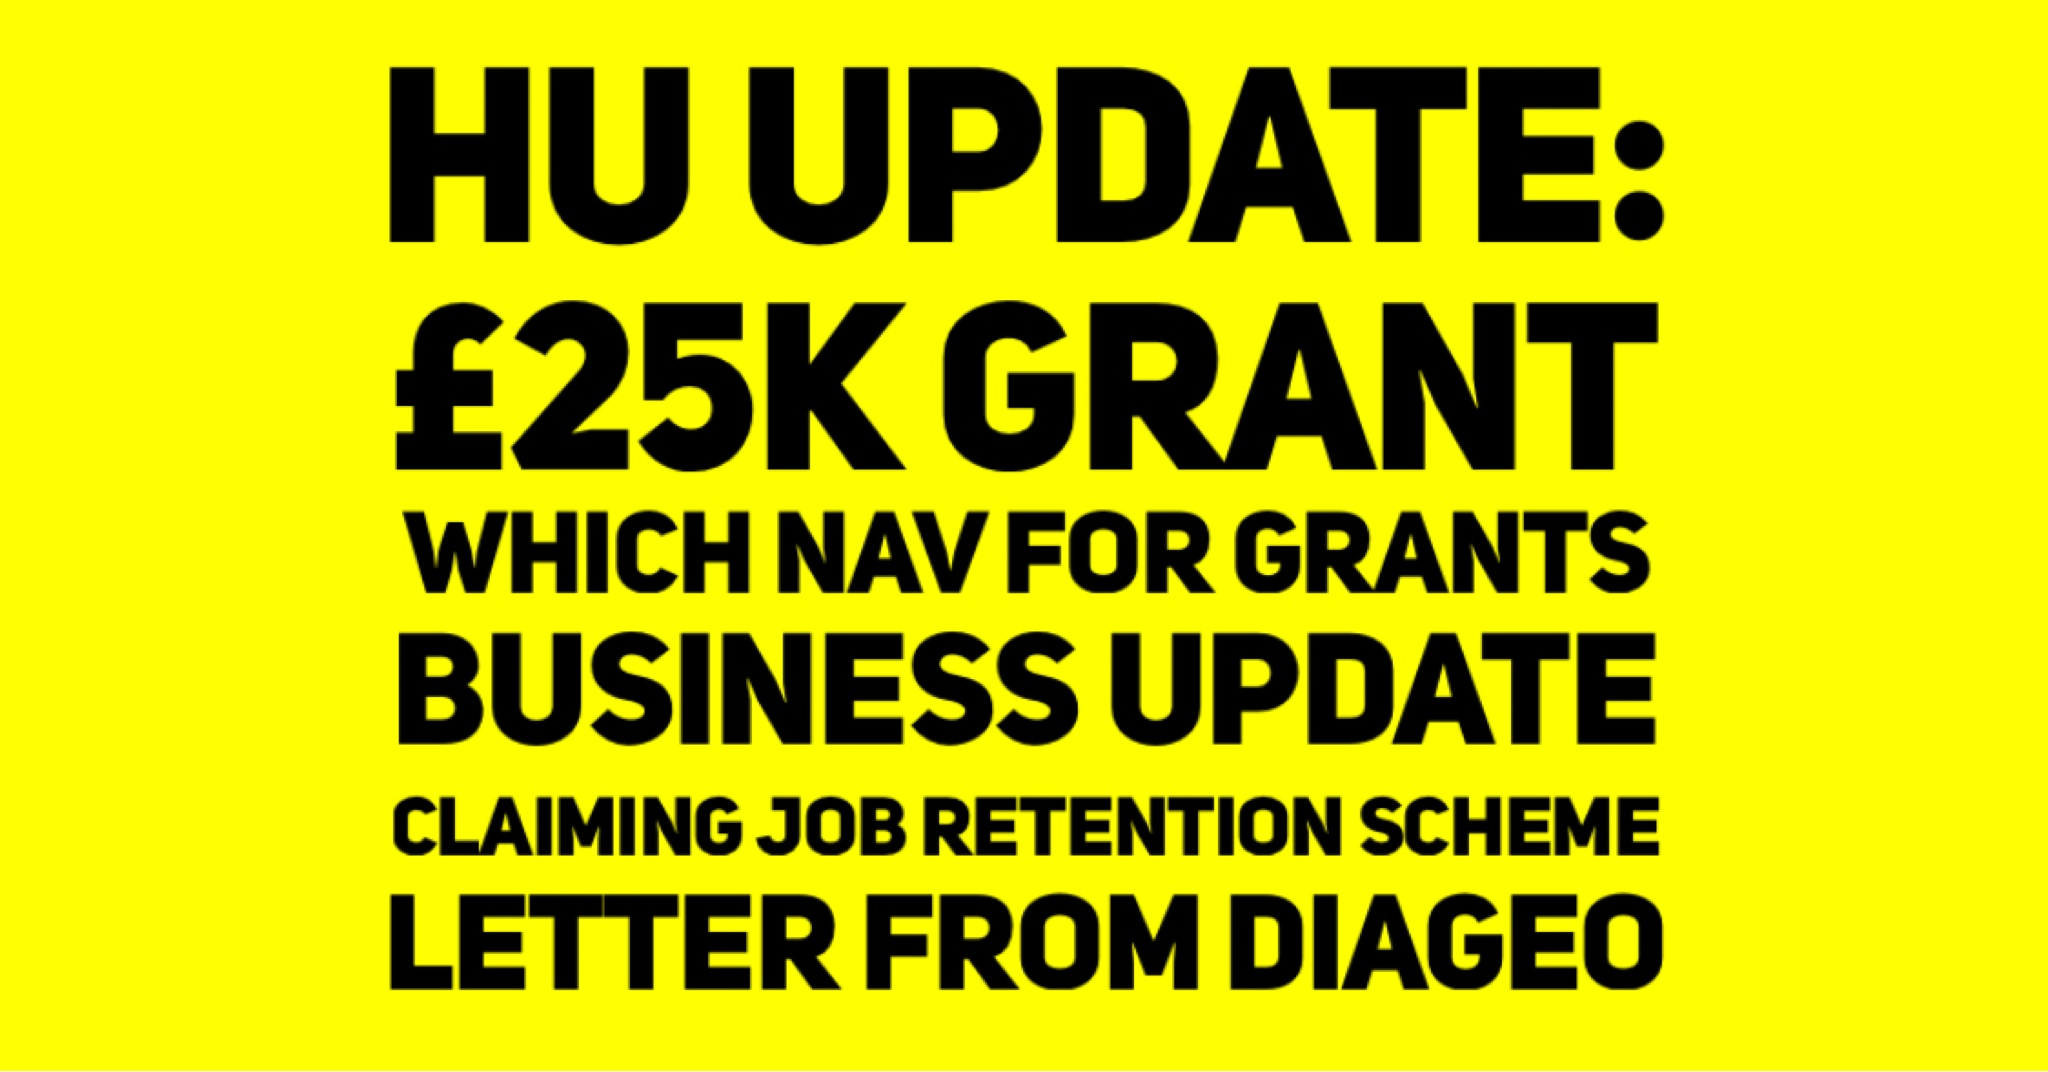 HU UPDATE 25K Grant Which NAV For Grants Business Update Claiming Job Retention Scheme Diageo Letter